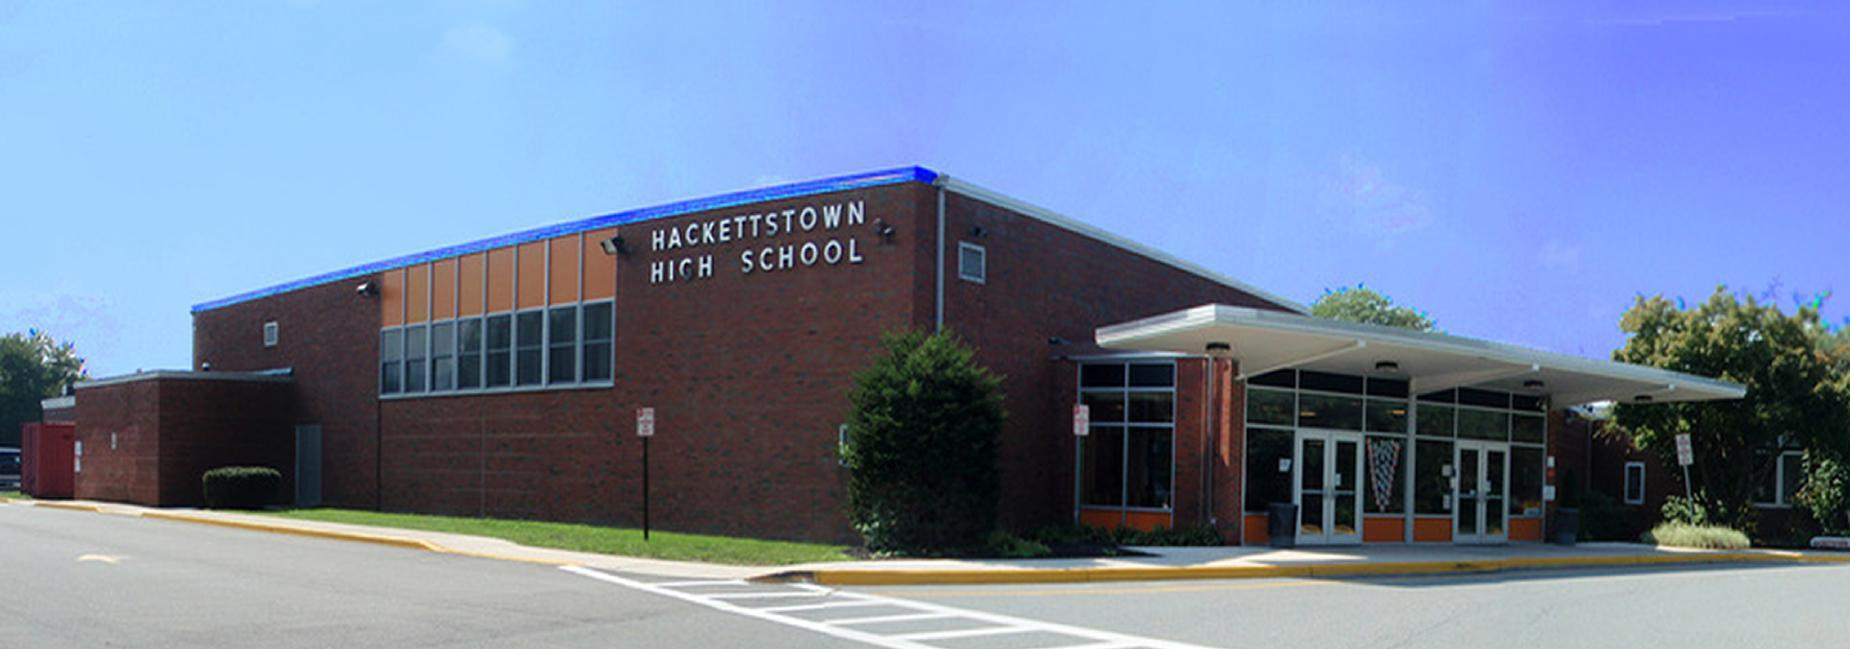 Hackettstown HS front of building